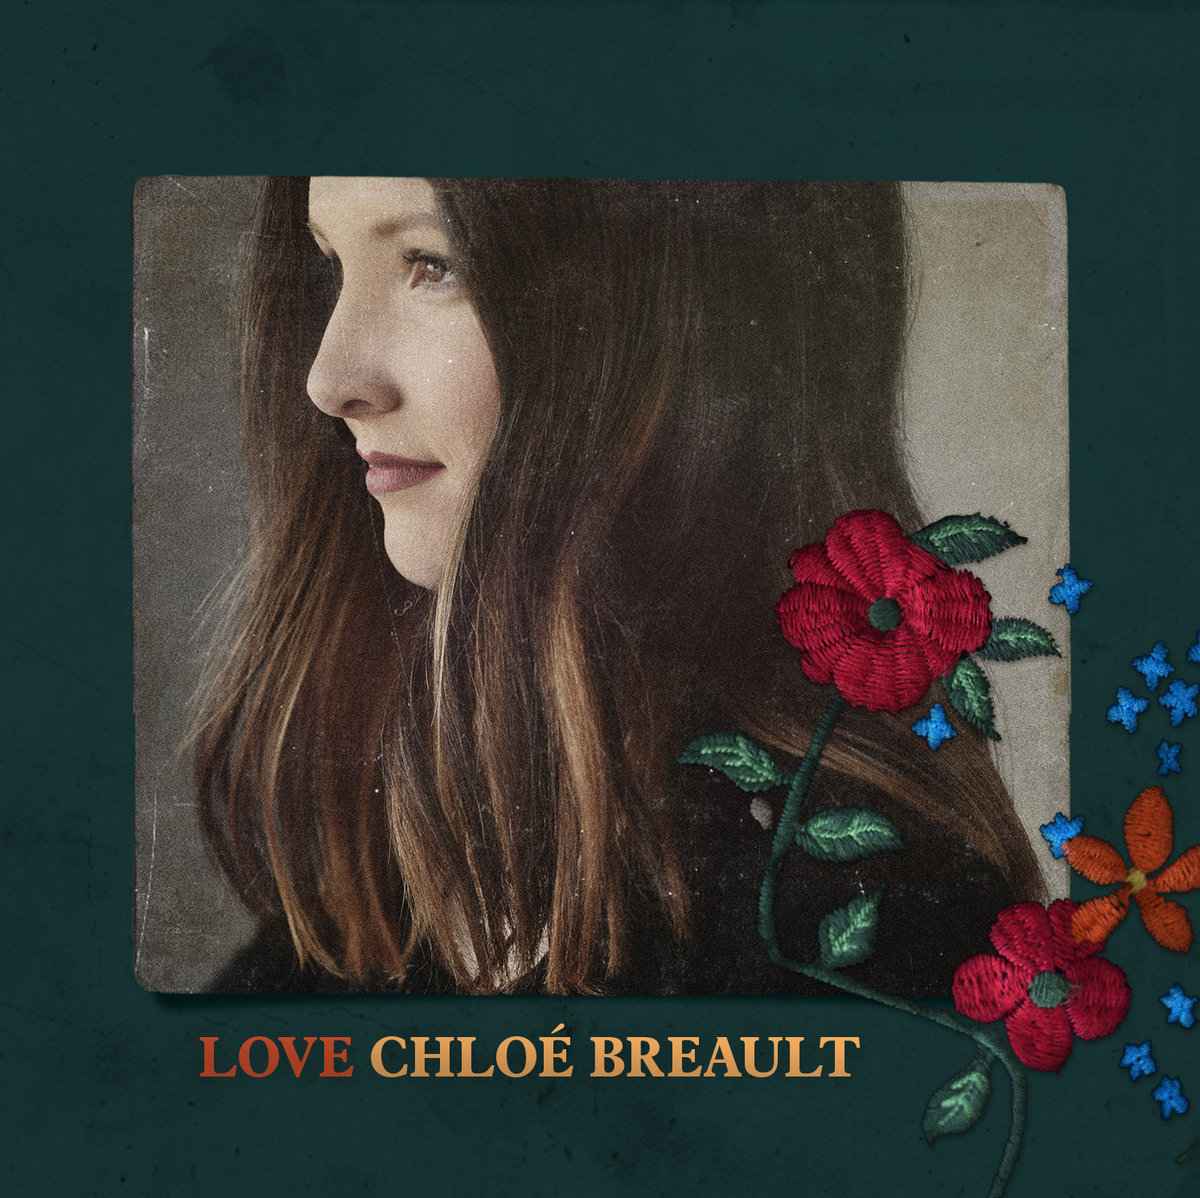 Chloé Breault - Love